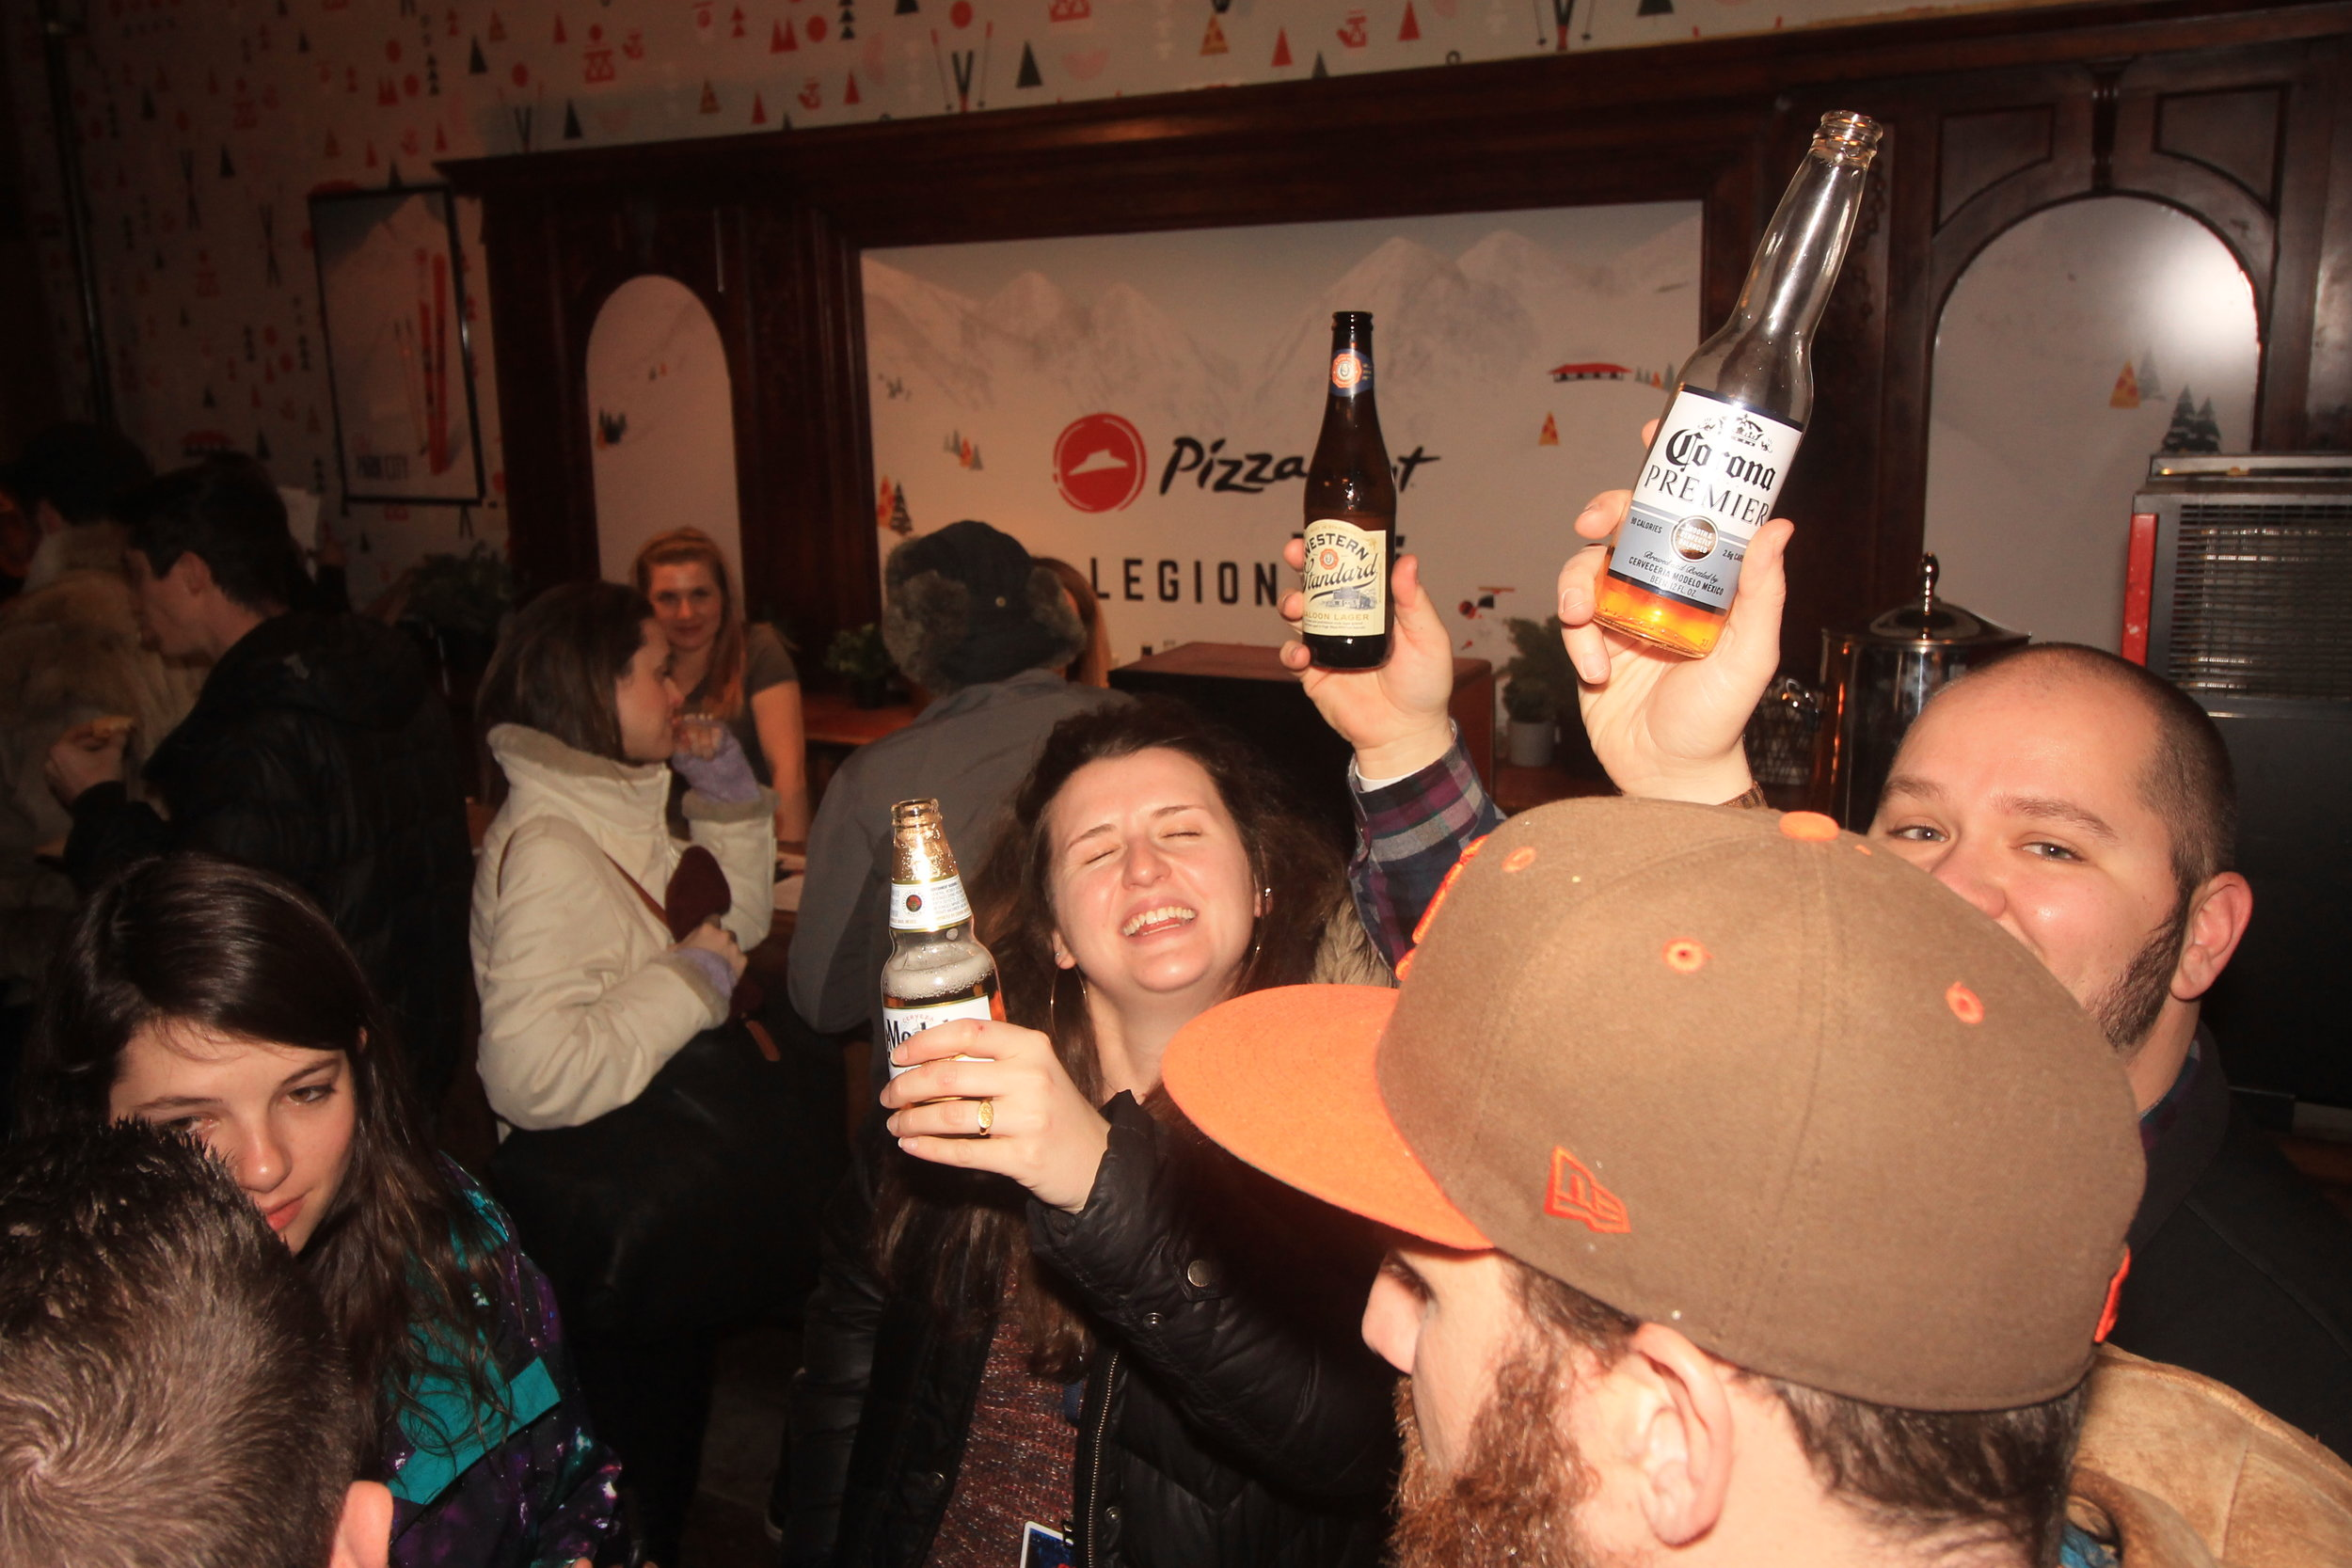 It's always a party with free Constellation Brands beer!